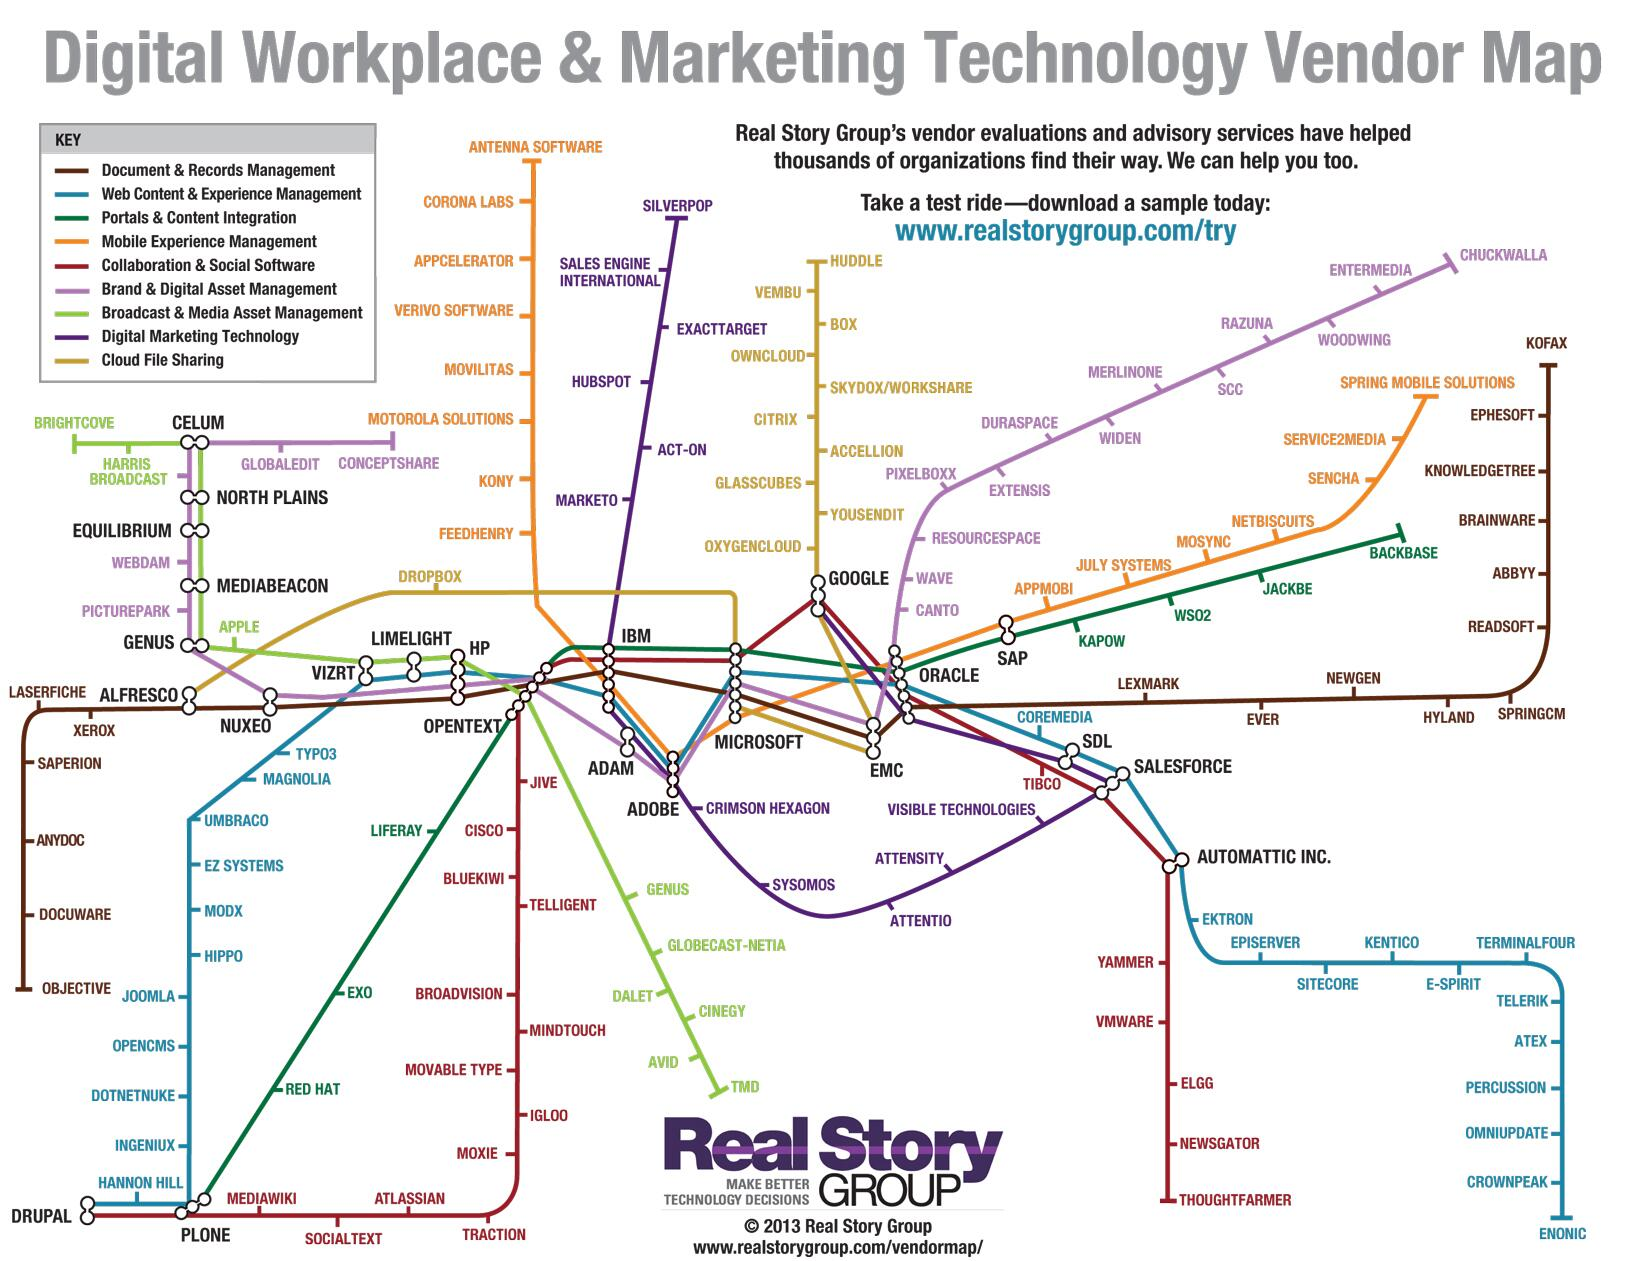 Lost in the #MarketingTechnology space? Check this vendor map of @realstorygroup for help! #DigitalAssetManagement http://t.co/IVkQr64dpu